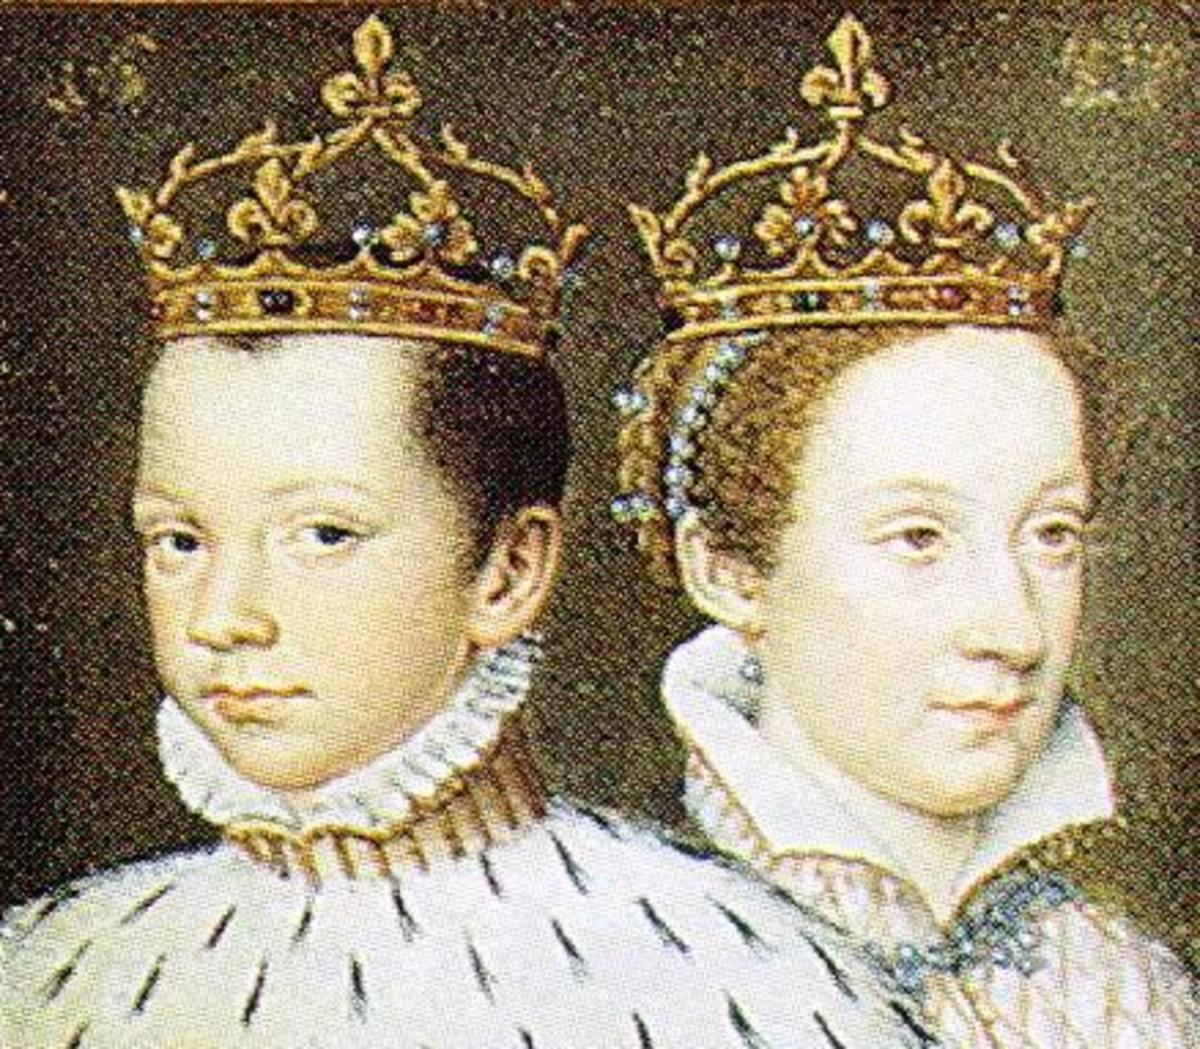 Mary's first husband was Francis II of France. Francis became King of France in 1559 and died in December 1560.